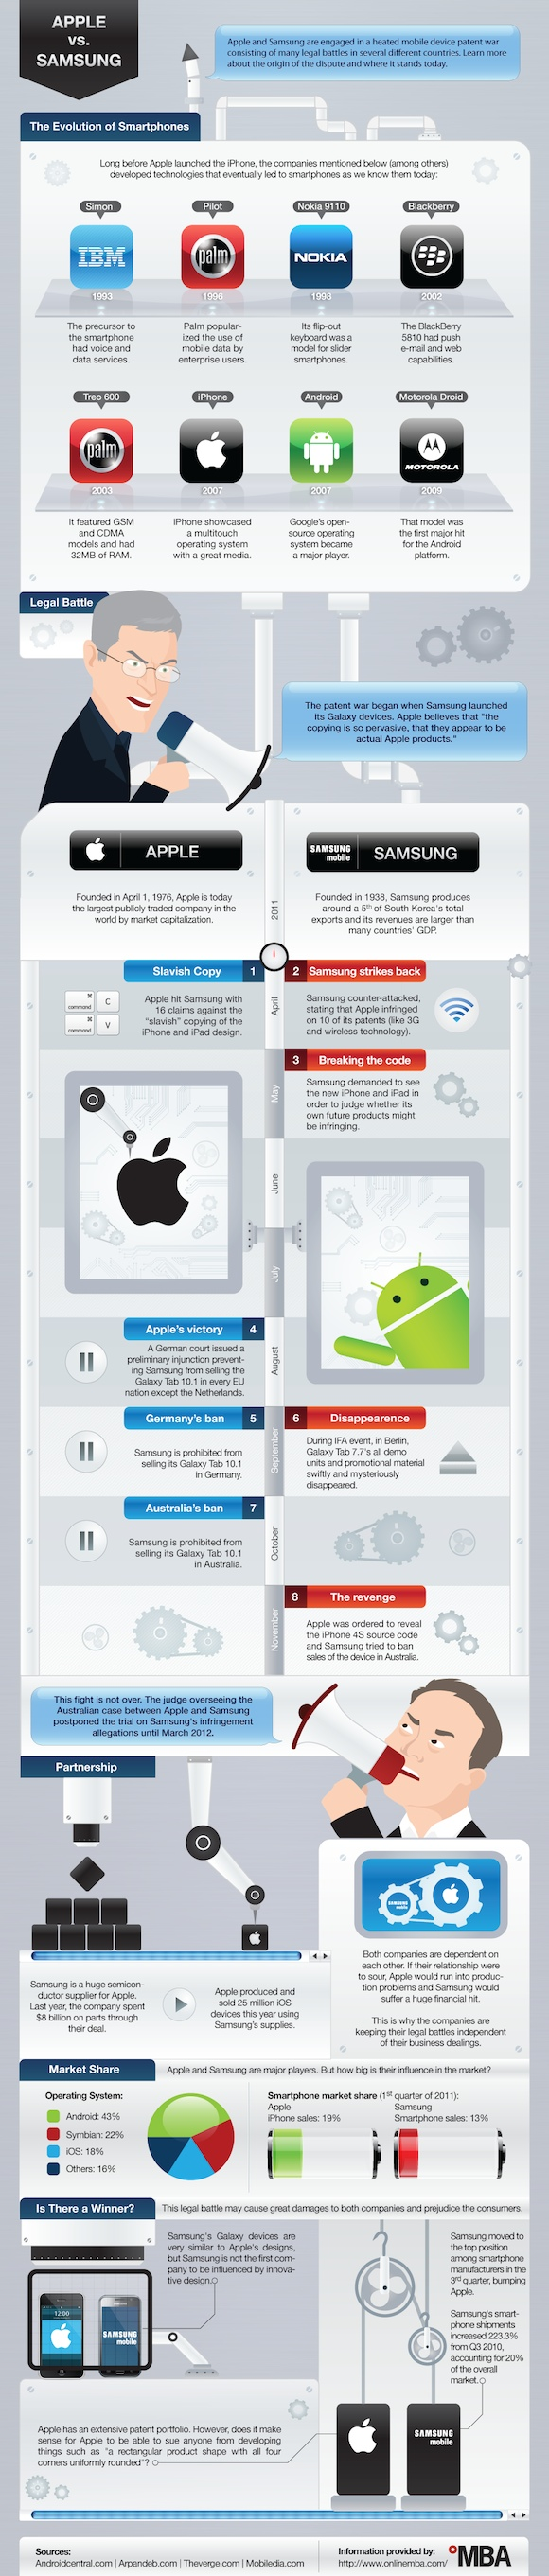 Apple Samsung Patent War